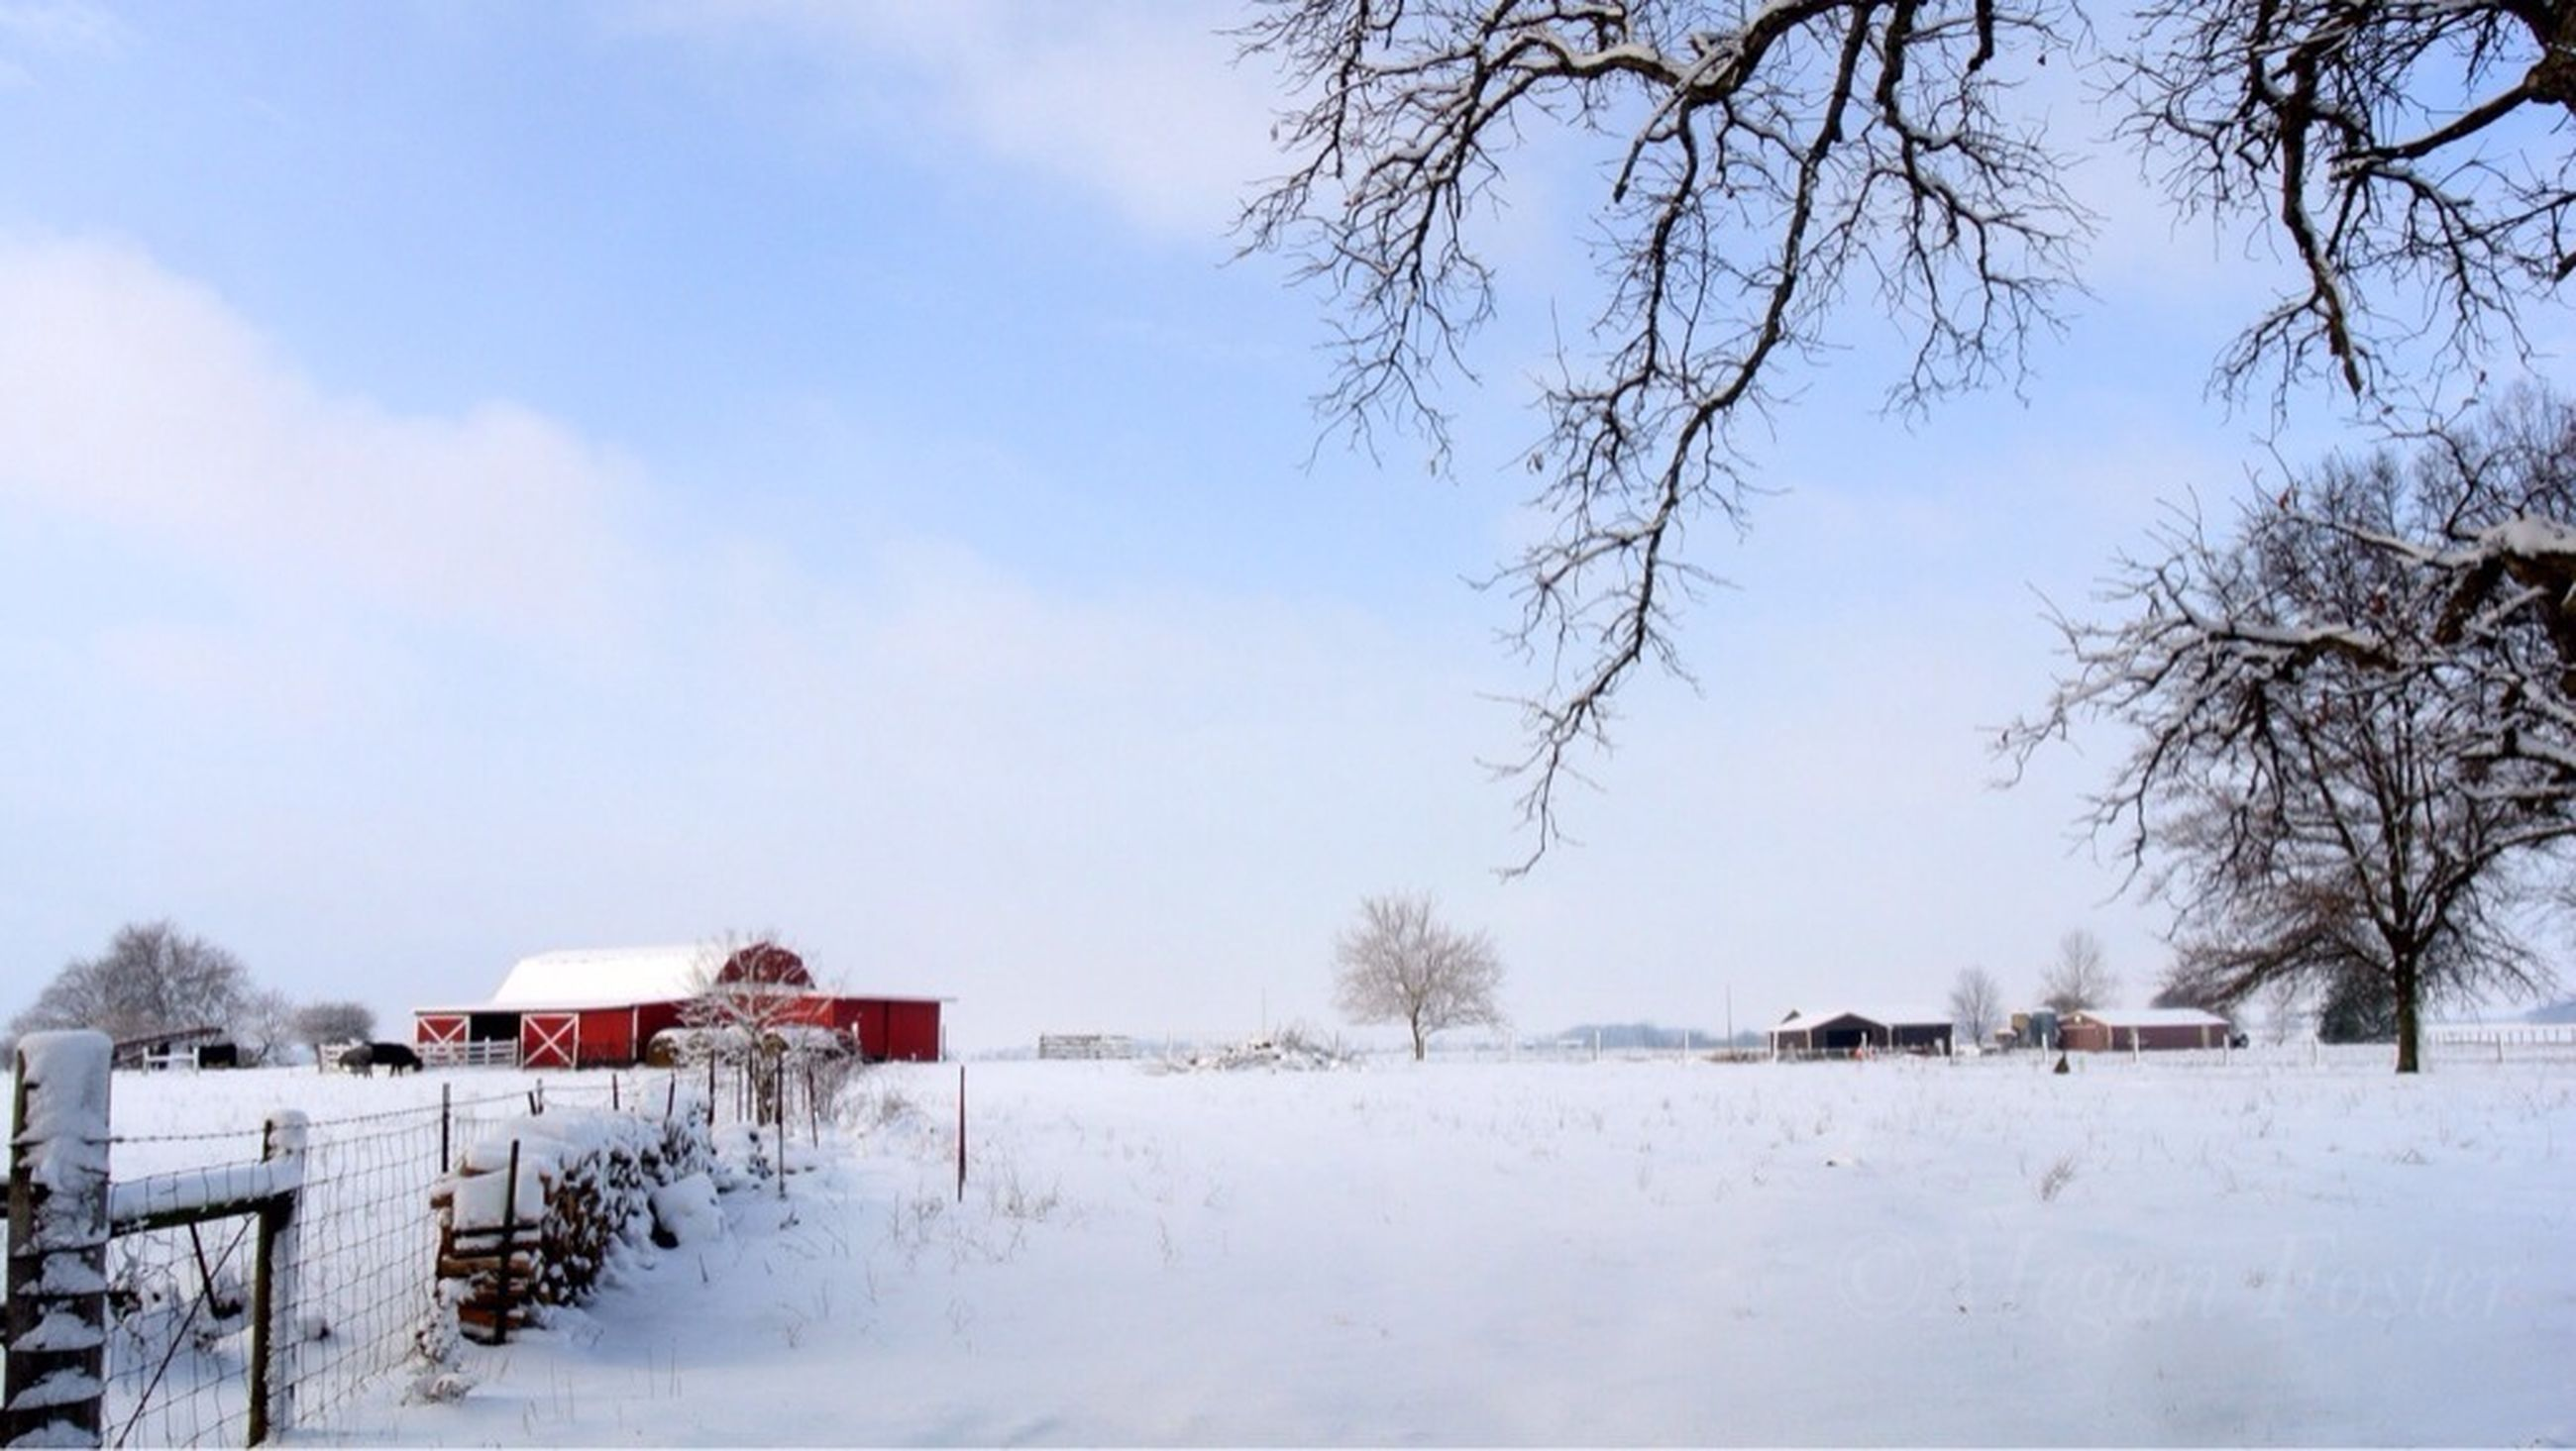 snow, winter, cold temperature, built structure, building exterior, architecture, house, season, weather, covering, field, landscape, sky, tree, residential structure, bare tree, nature, white color, tranquility, tranquil scene